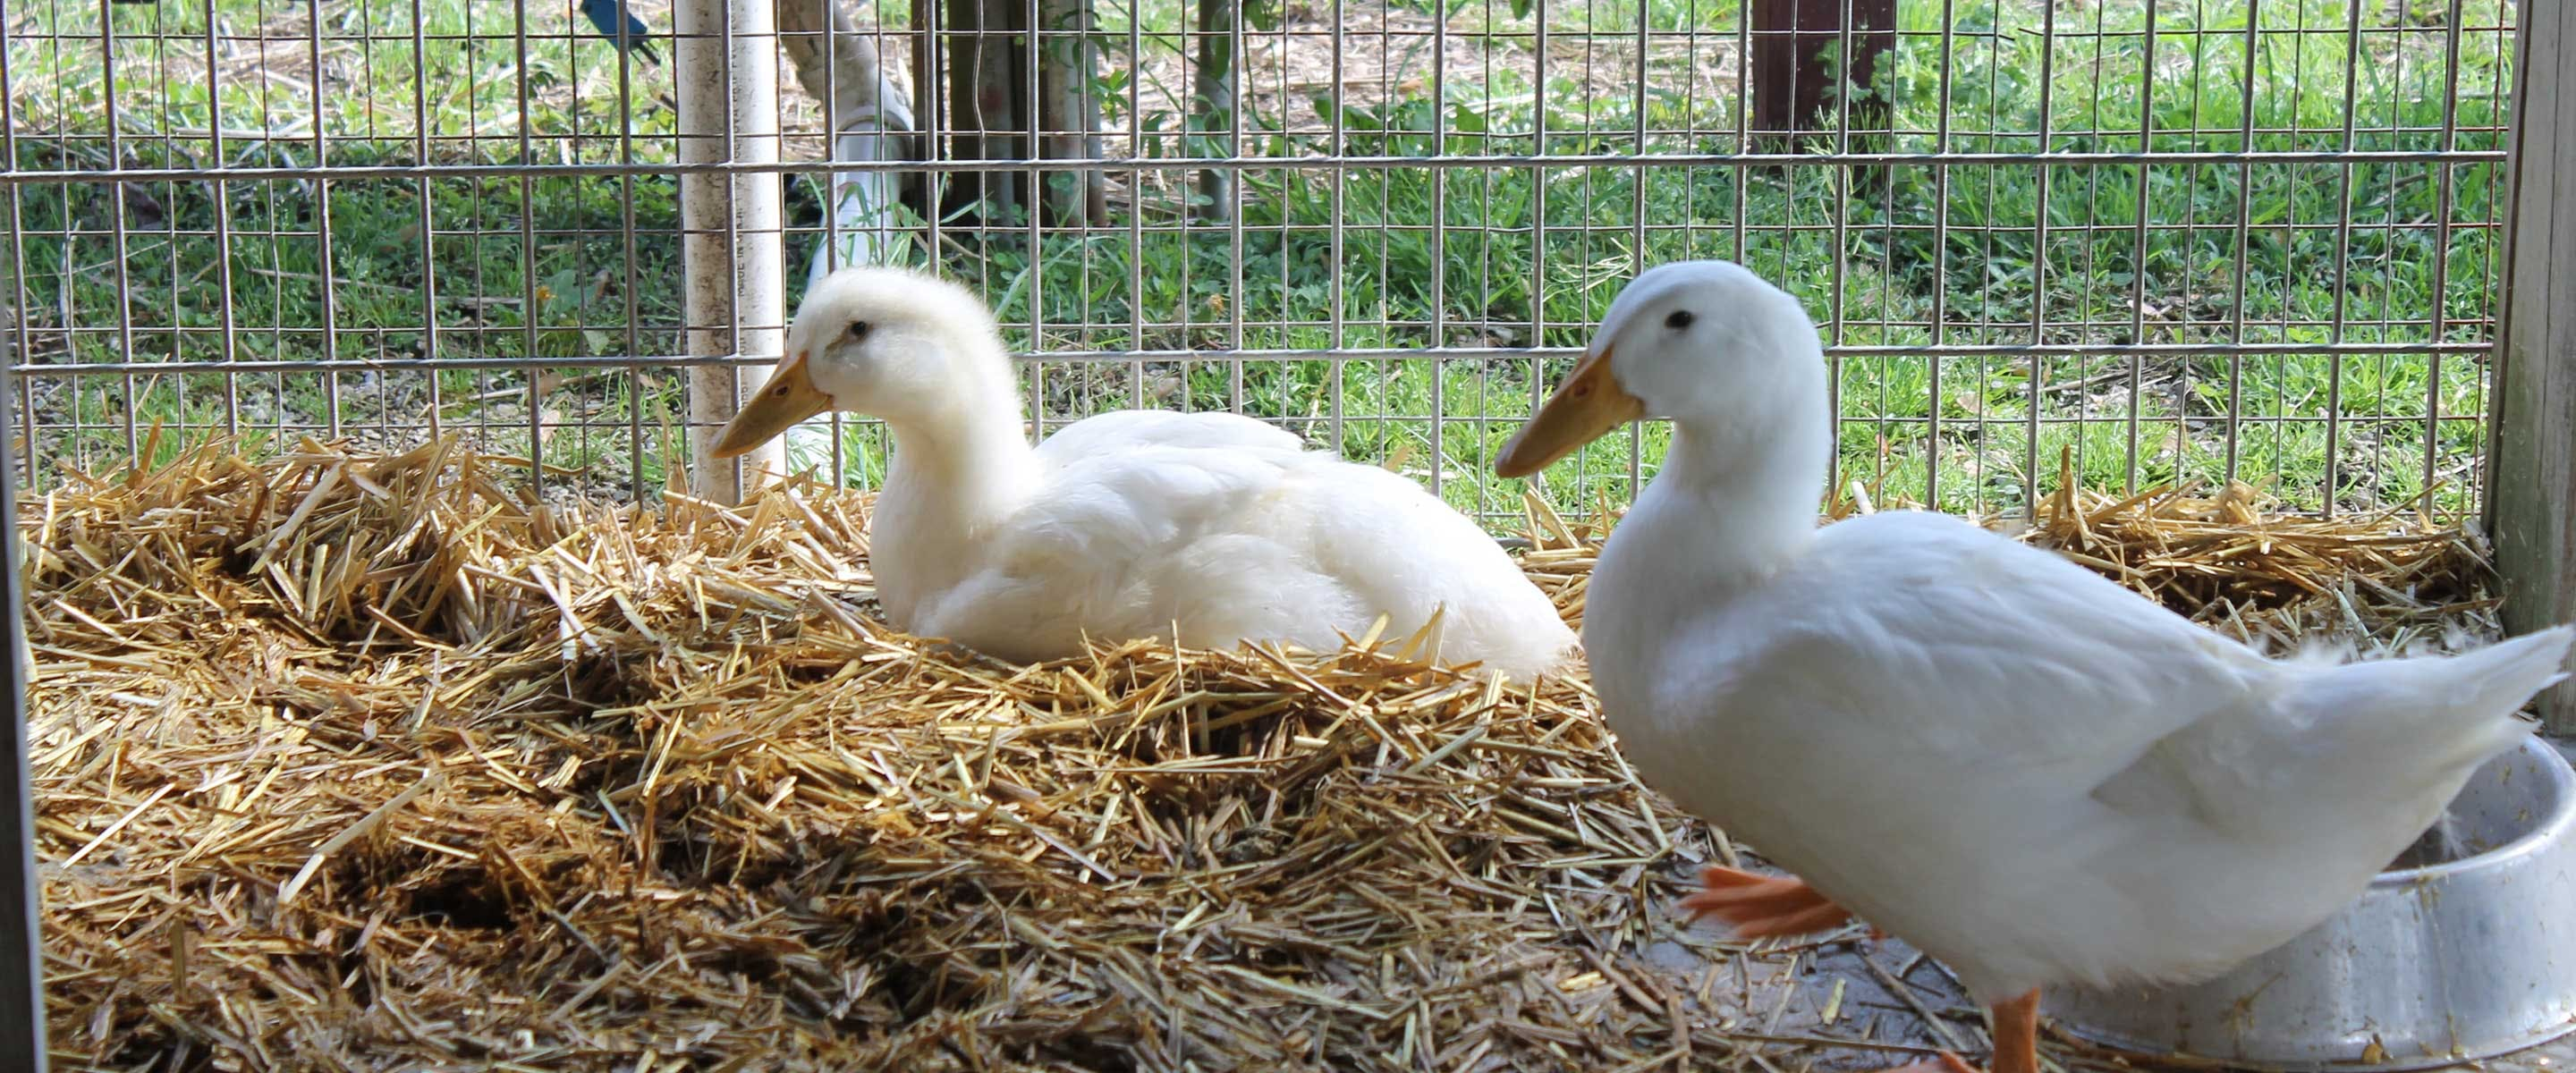 two white ducks enjoying the straw bed